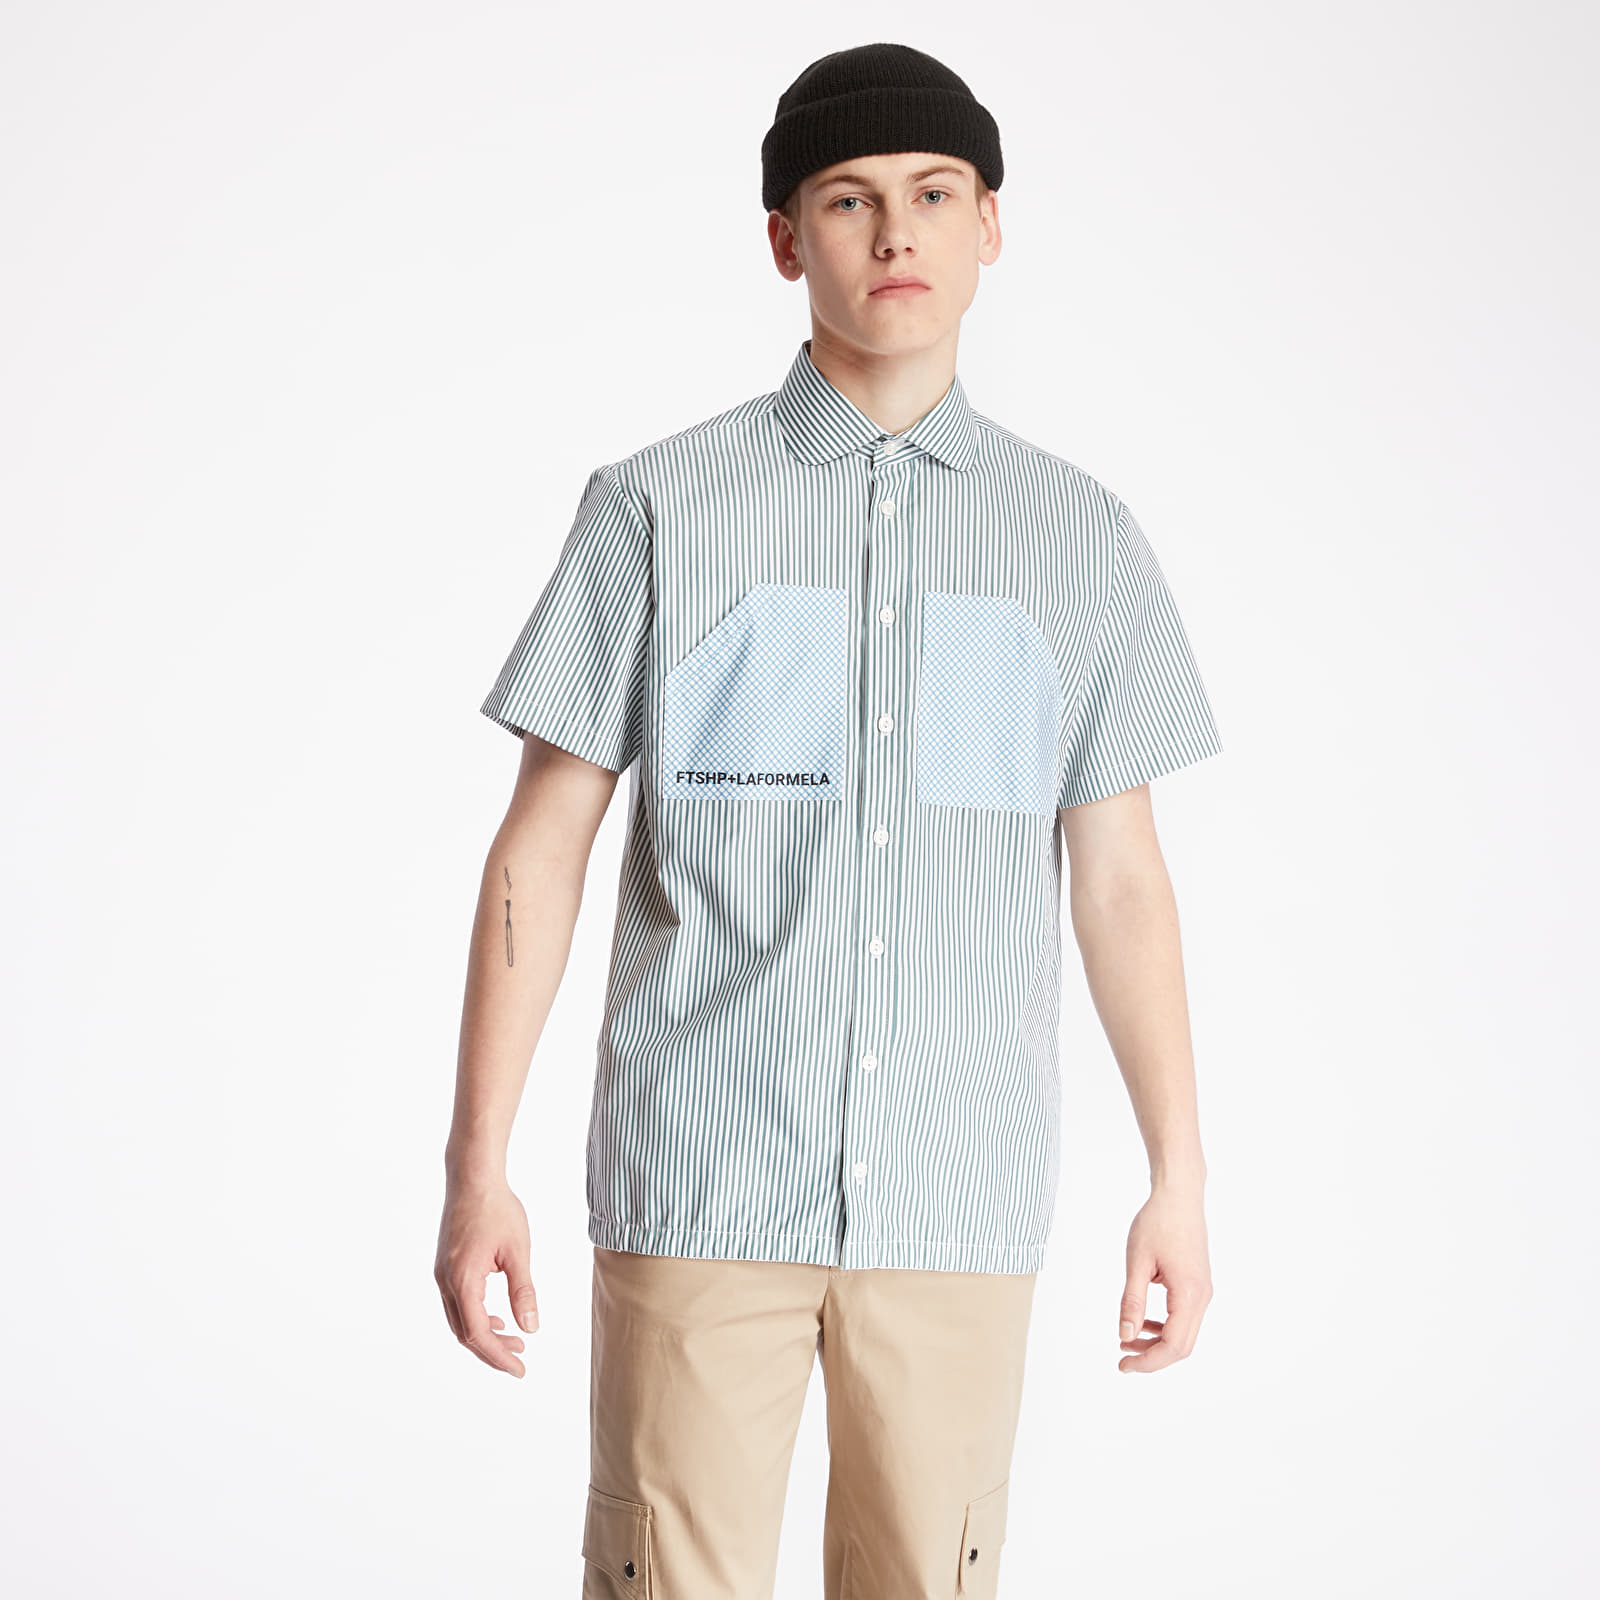 "FTSHP + LAFORMELA ""No Season"" Shortsleeve Shirt"